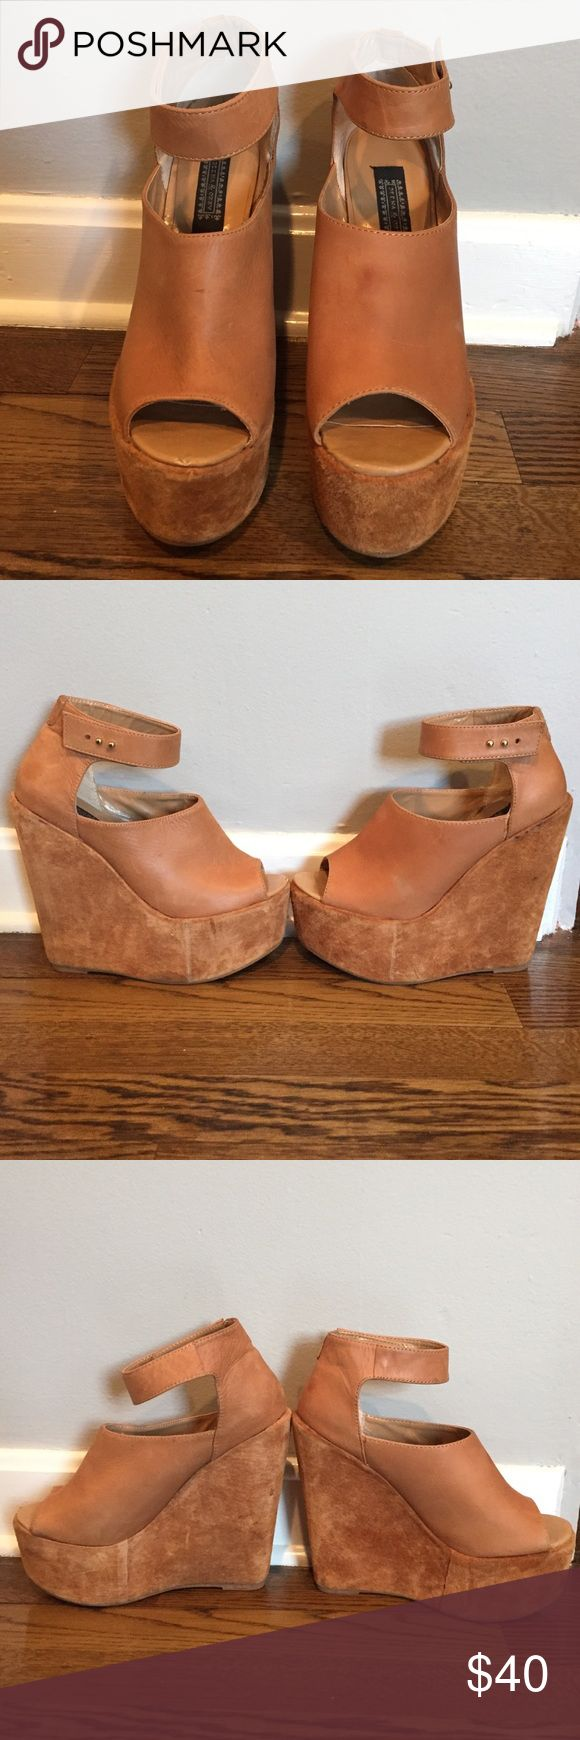 "Deena & Ozzy Wedges Platform Wedges. Brown leather with brown suede bottom. Some signs of wear as pictured but could possibly be removed with a good cleaning. 6"" heel height Deena & Ozzy Shoes Wedges"